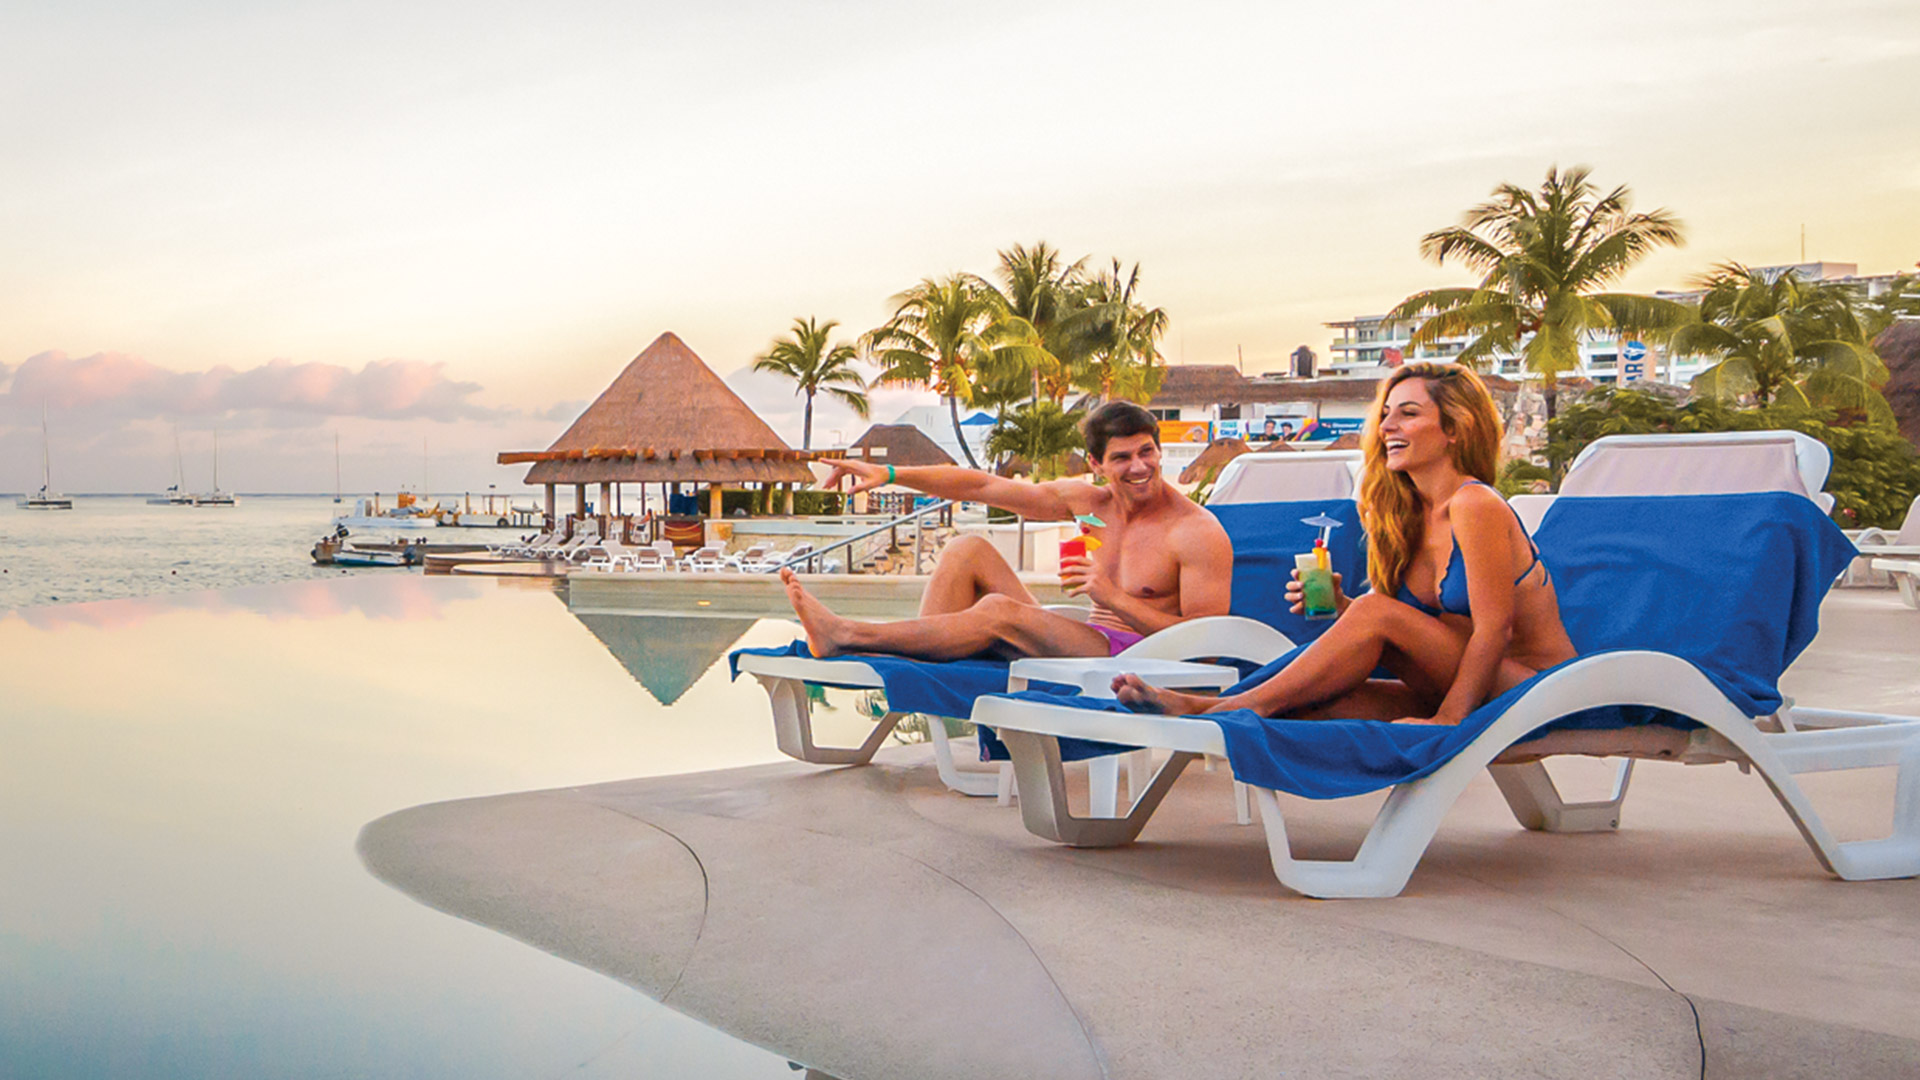 royal-holiday-hotel-resort-pareja-piscina-grand-park-royal-cozumel-mexico-cozumel